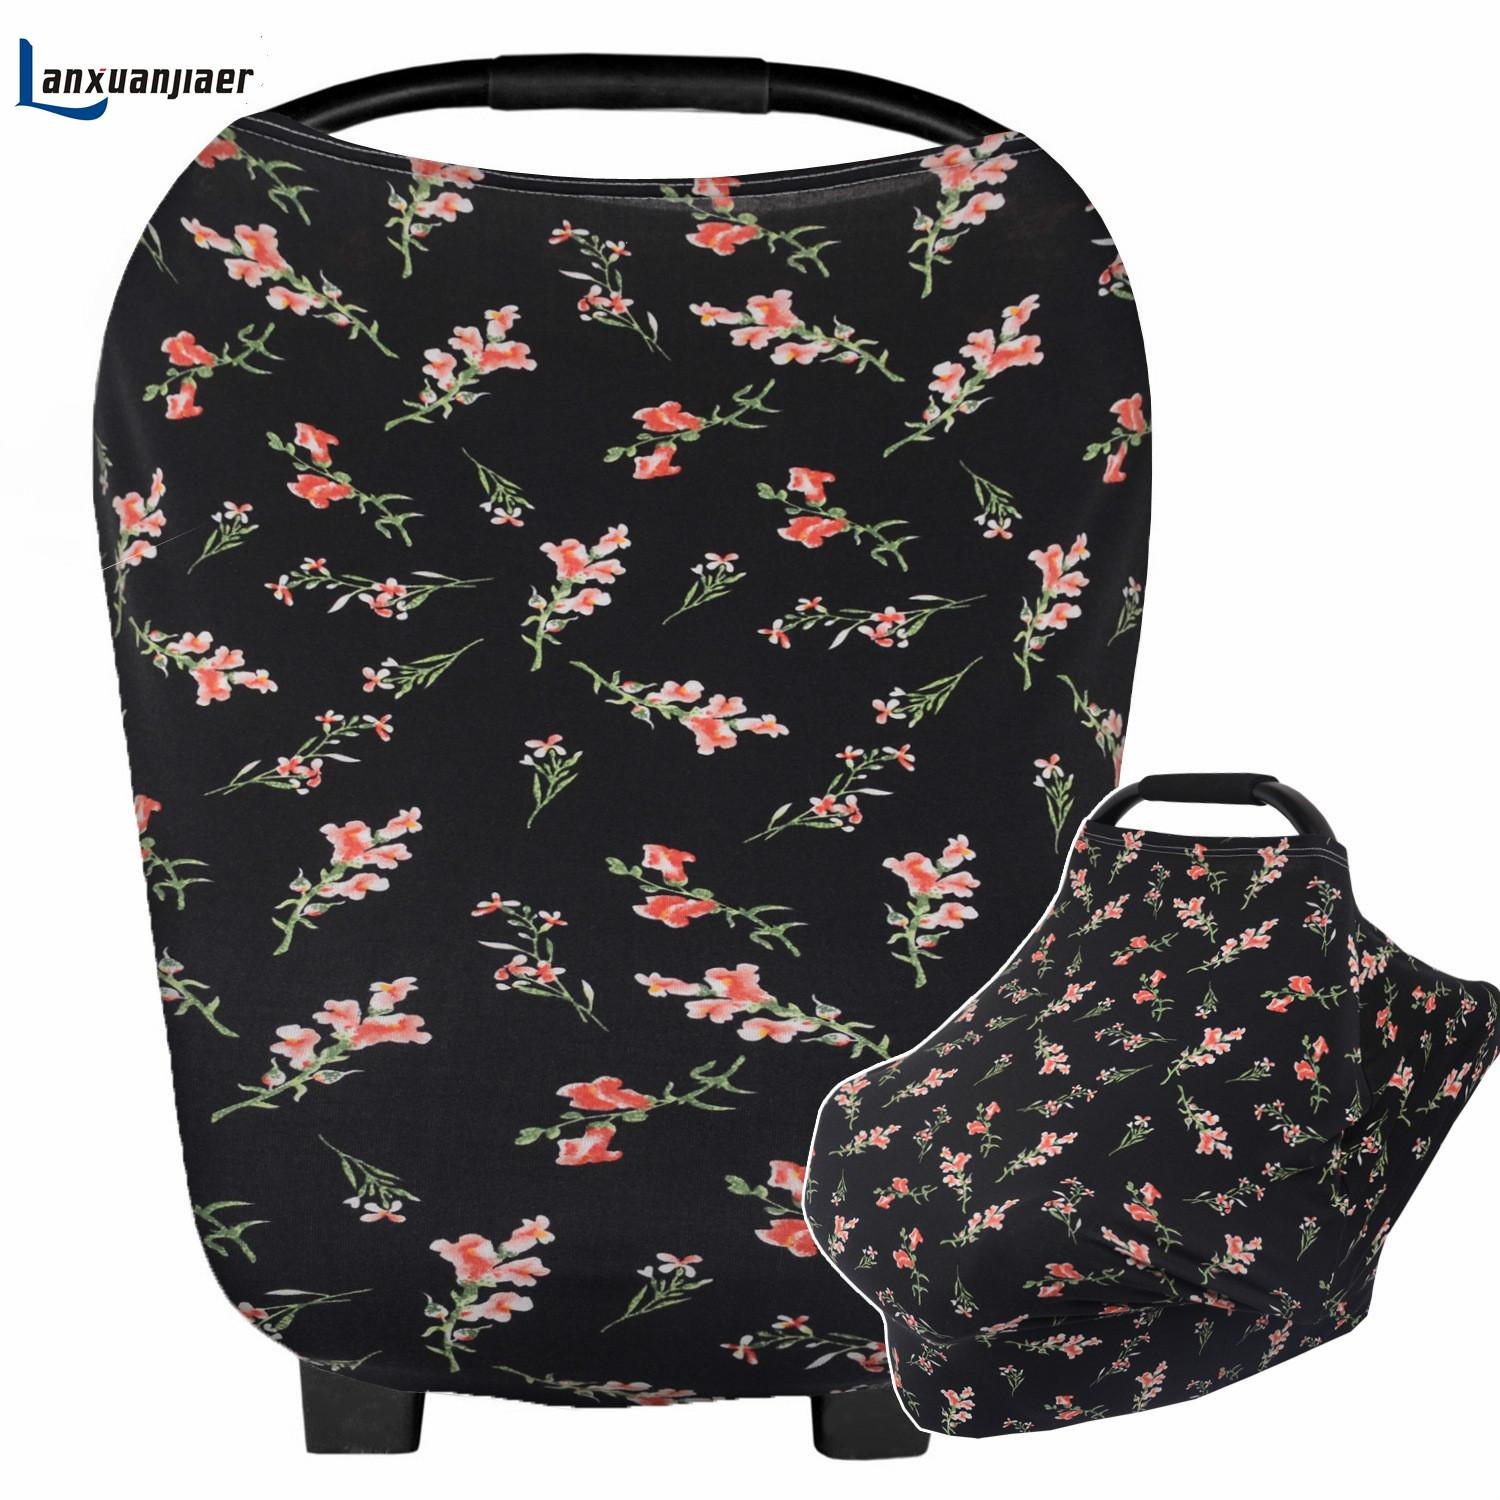 Lanxuanjiaer Baby Car Seat Cover Nursing Cover Car Seat Canopy ...